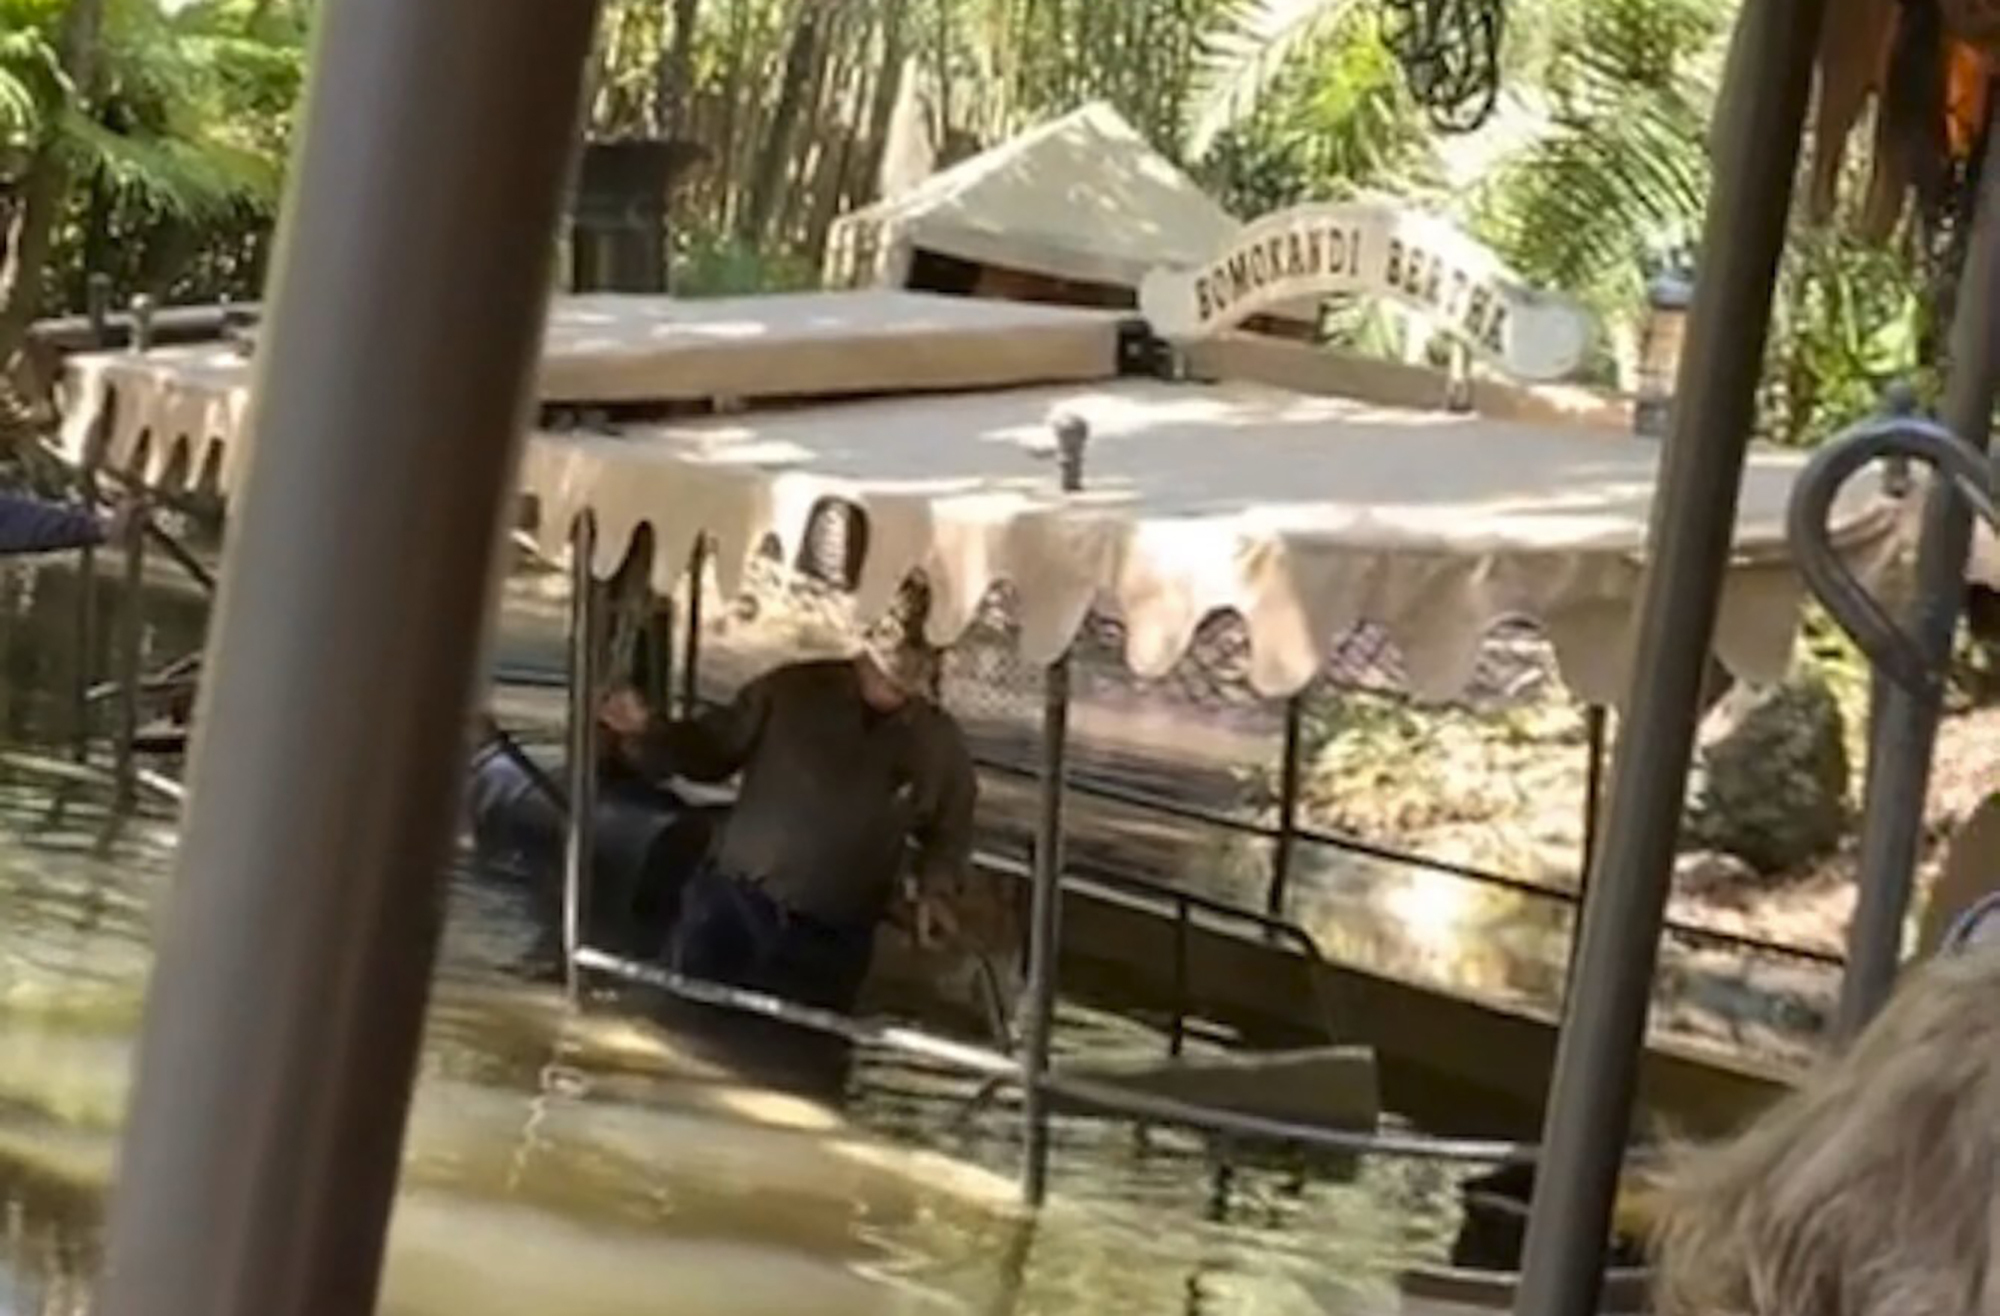 Boat at Disney World's Jungle Cruise sinks during ride; guests filmed being rescued by staff